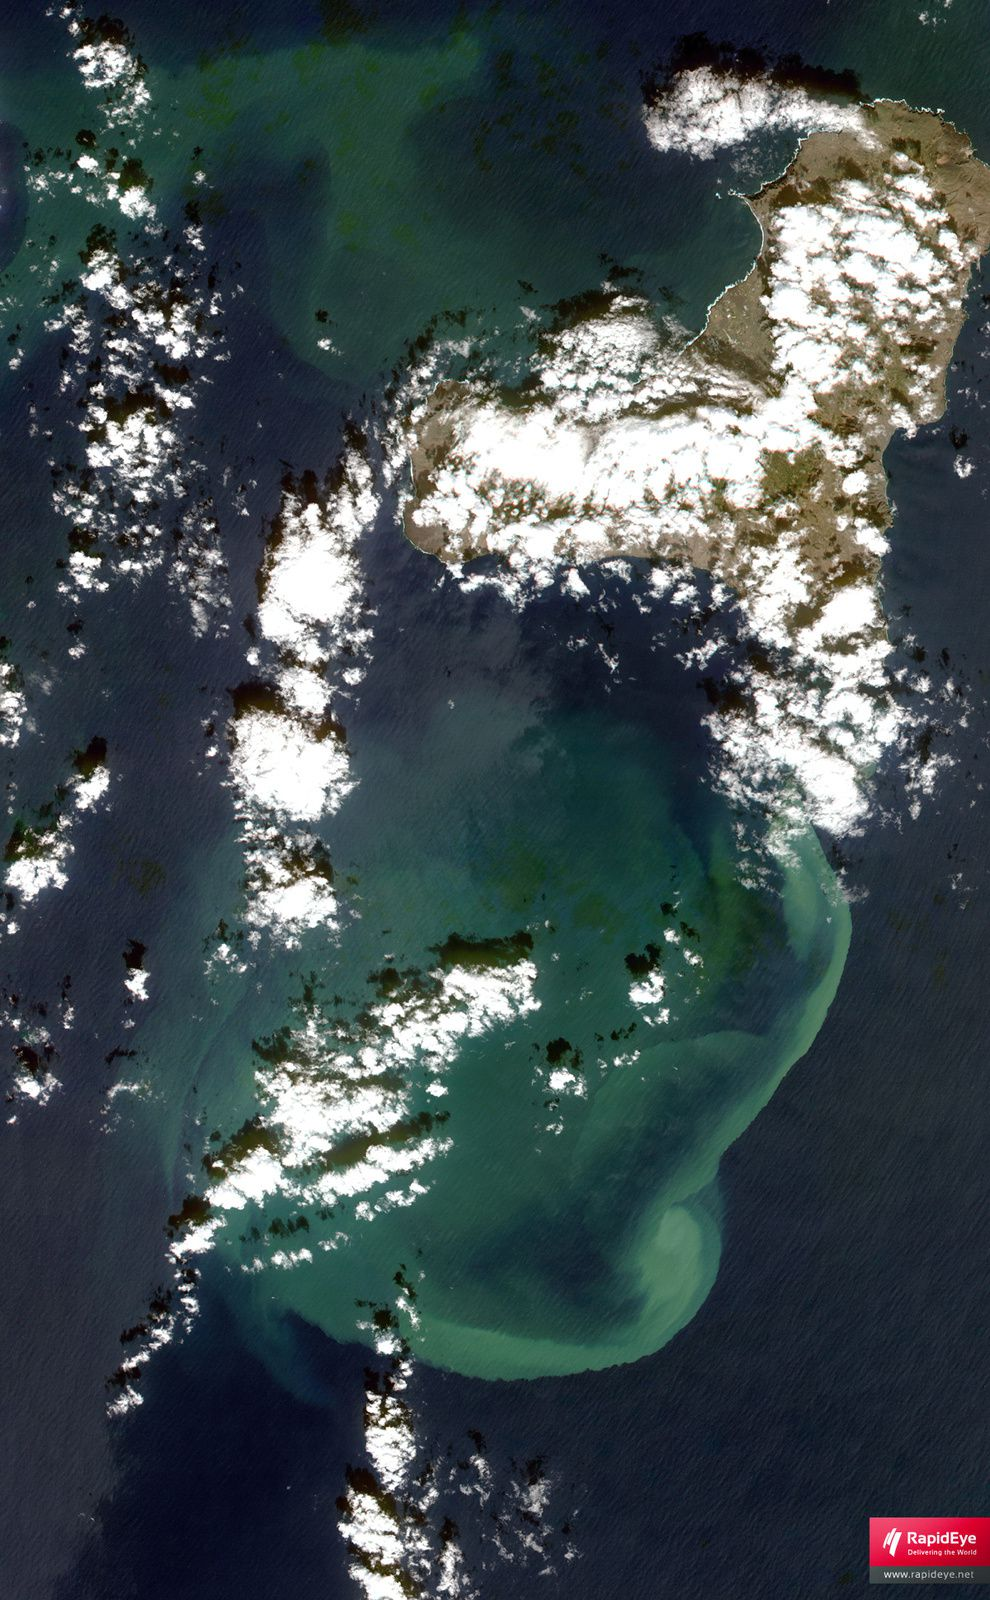 El Hierro - discoloration of the ocean caused by the submarine eruption - photo Nasa Rapid eye 31.10.2011